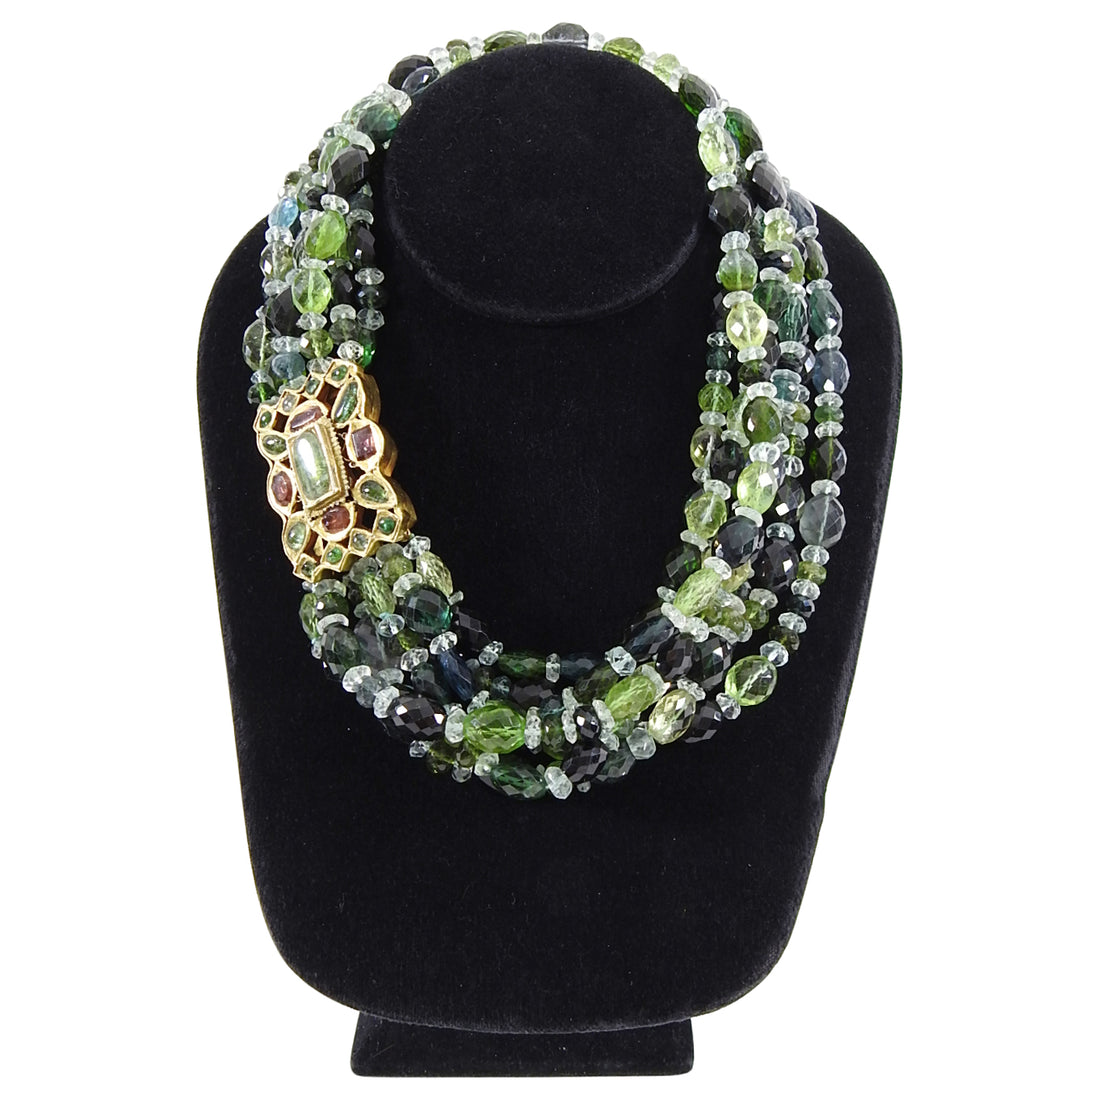 Eileen Coyne 22k Gold and Green Tourmaline Multi Strand Bead Necklace